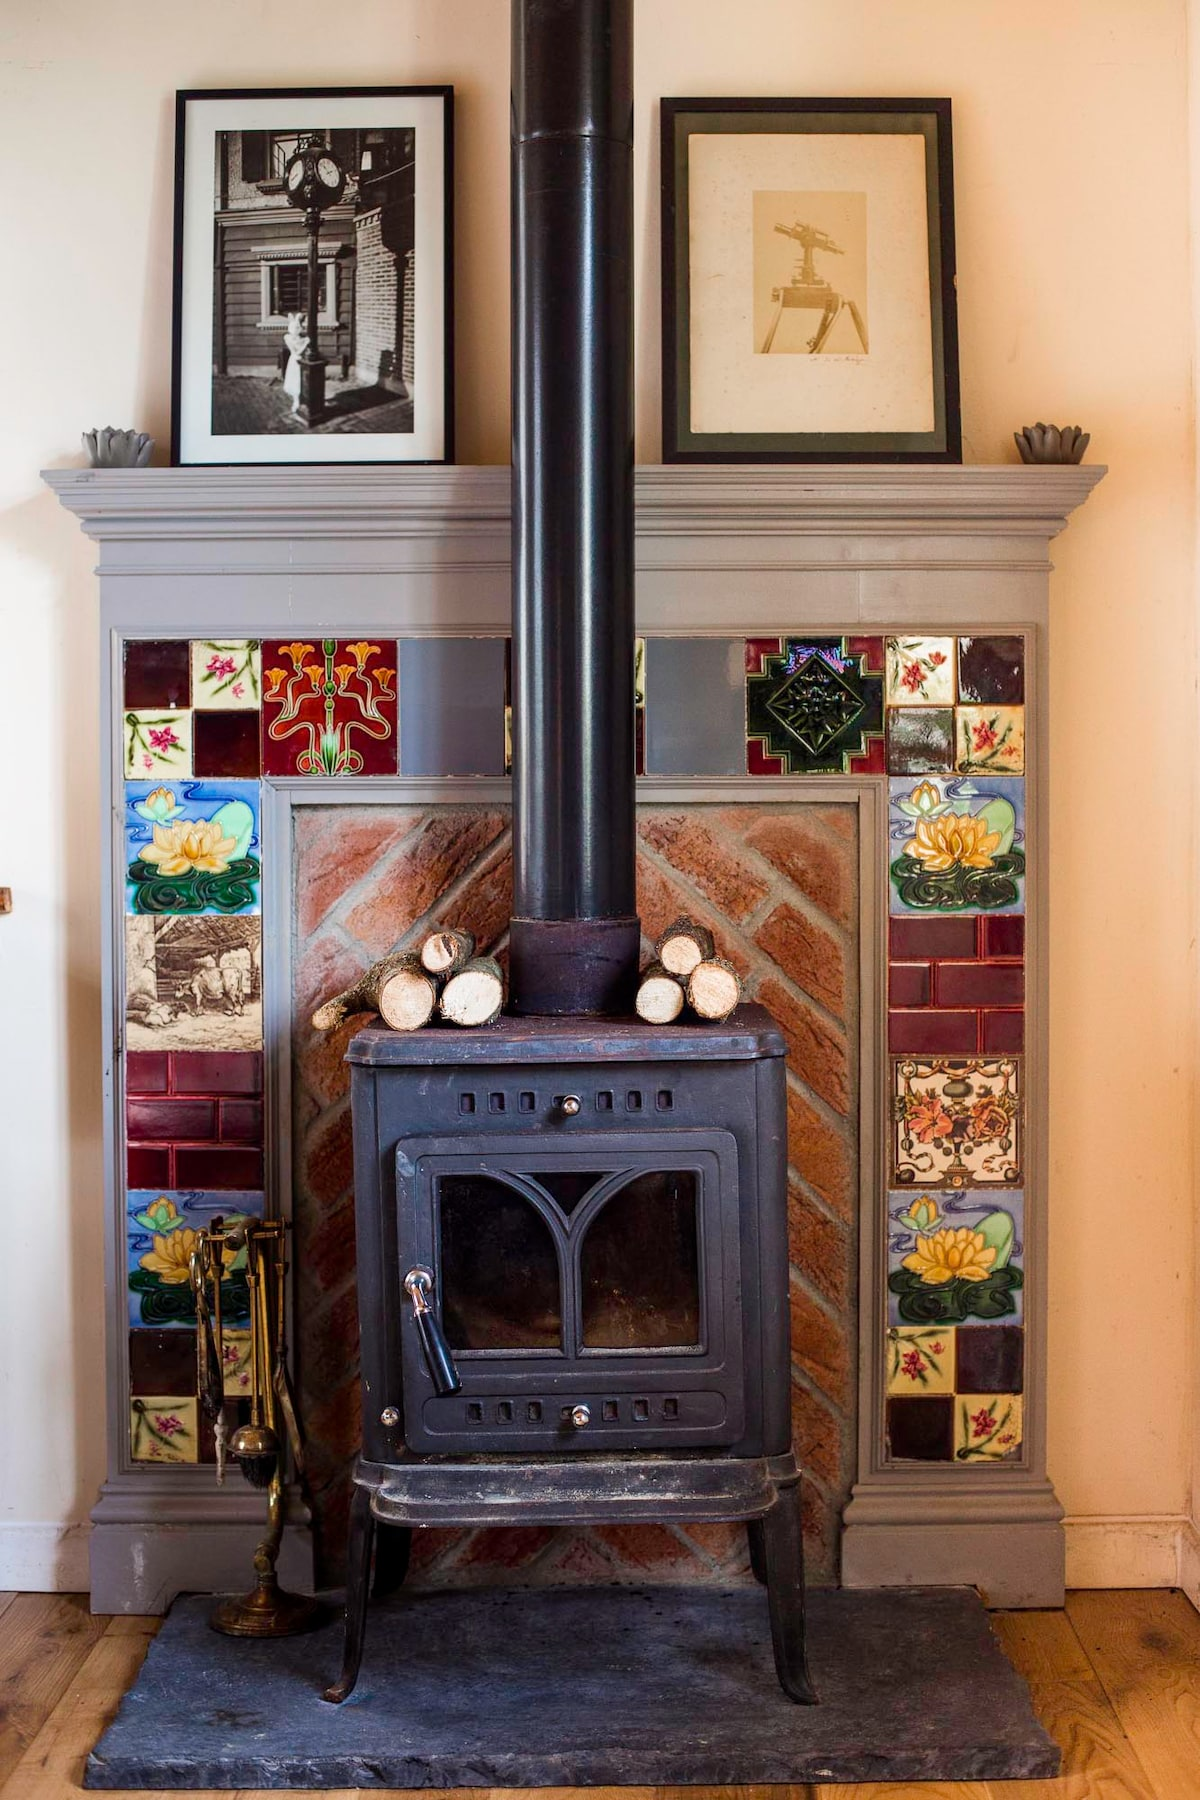 A wood burning stove to stay proper cosy.